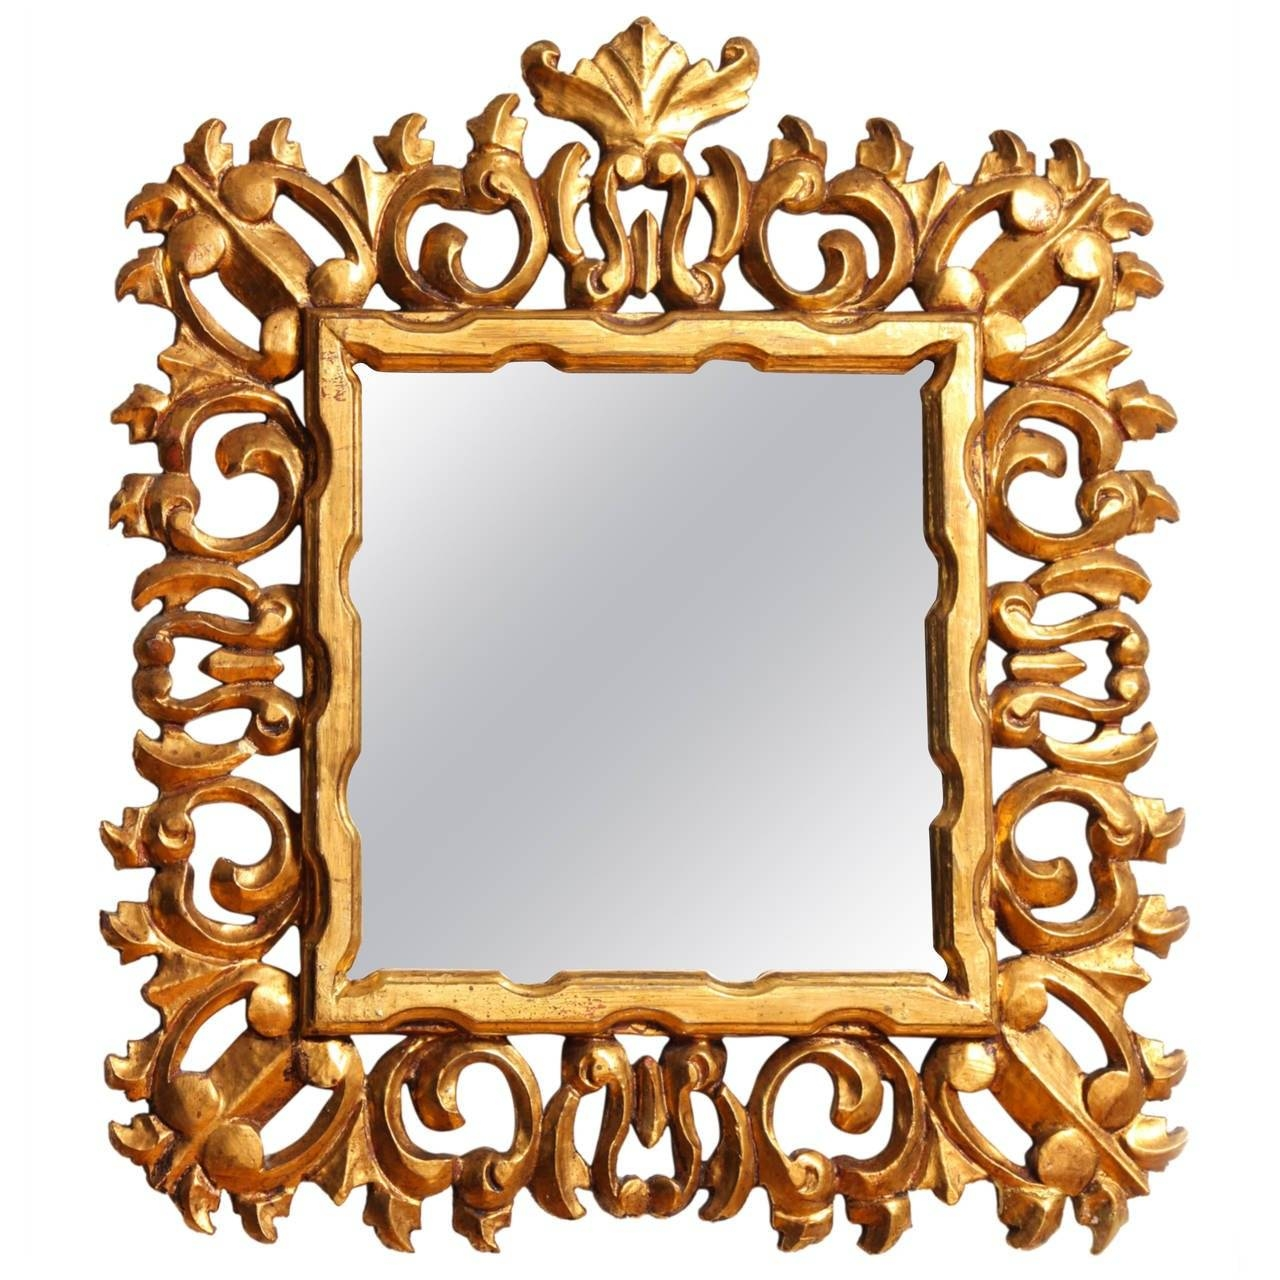 Carved And Gilded Italian Baroque Style Mirror Frame For Sale At intended for Baroque Style Mirrors (Image 10 of 25)